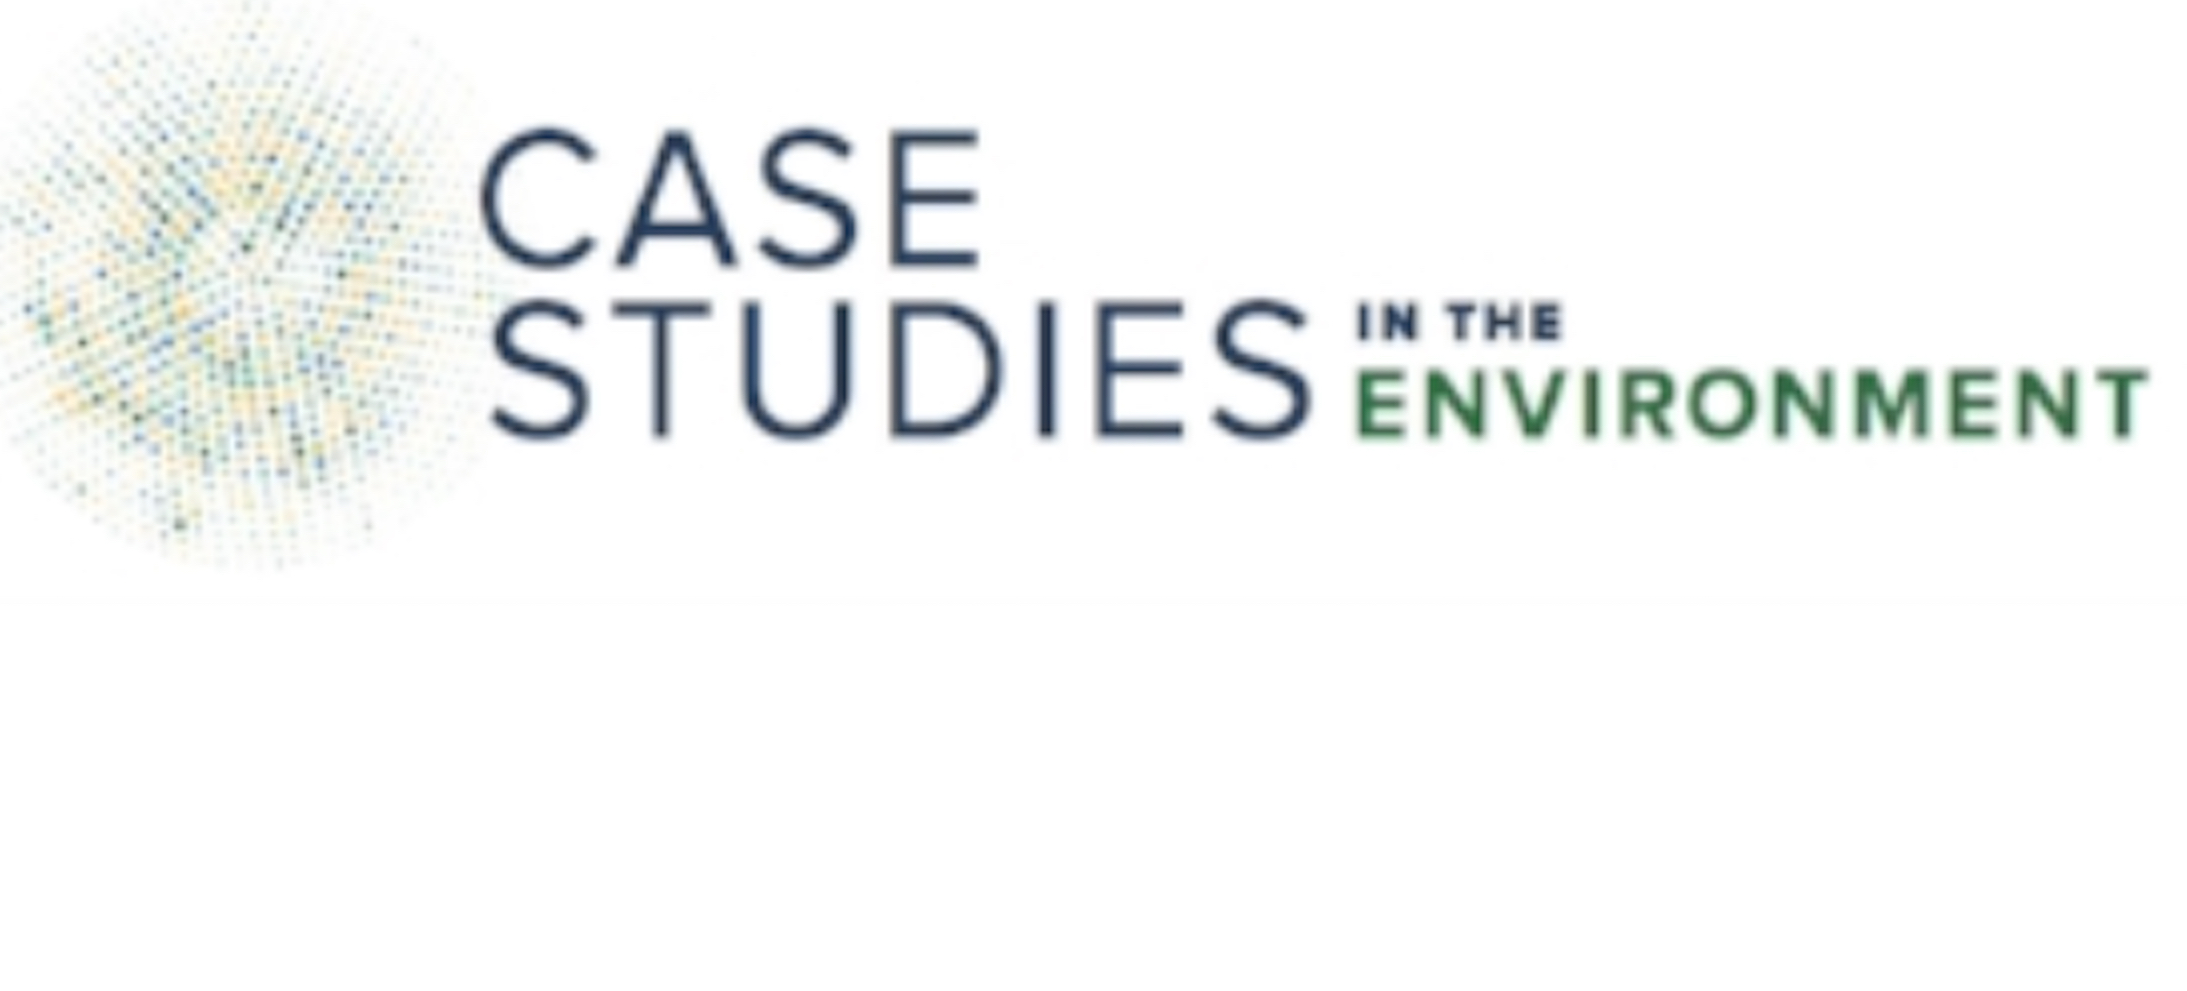 Case studies in business environment